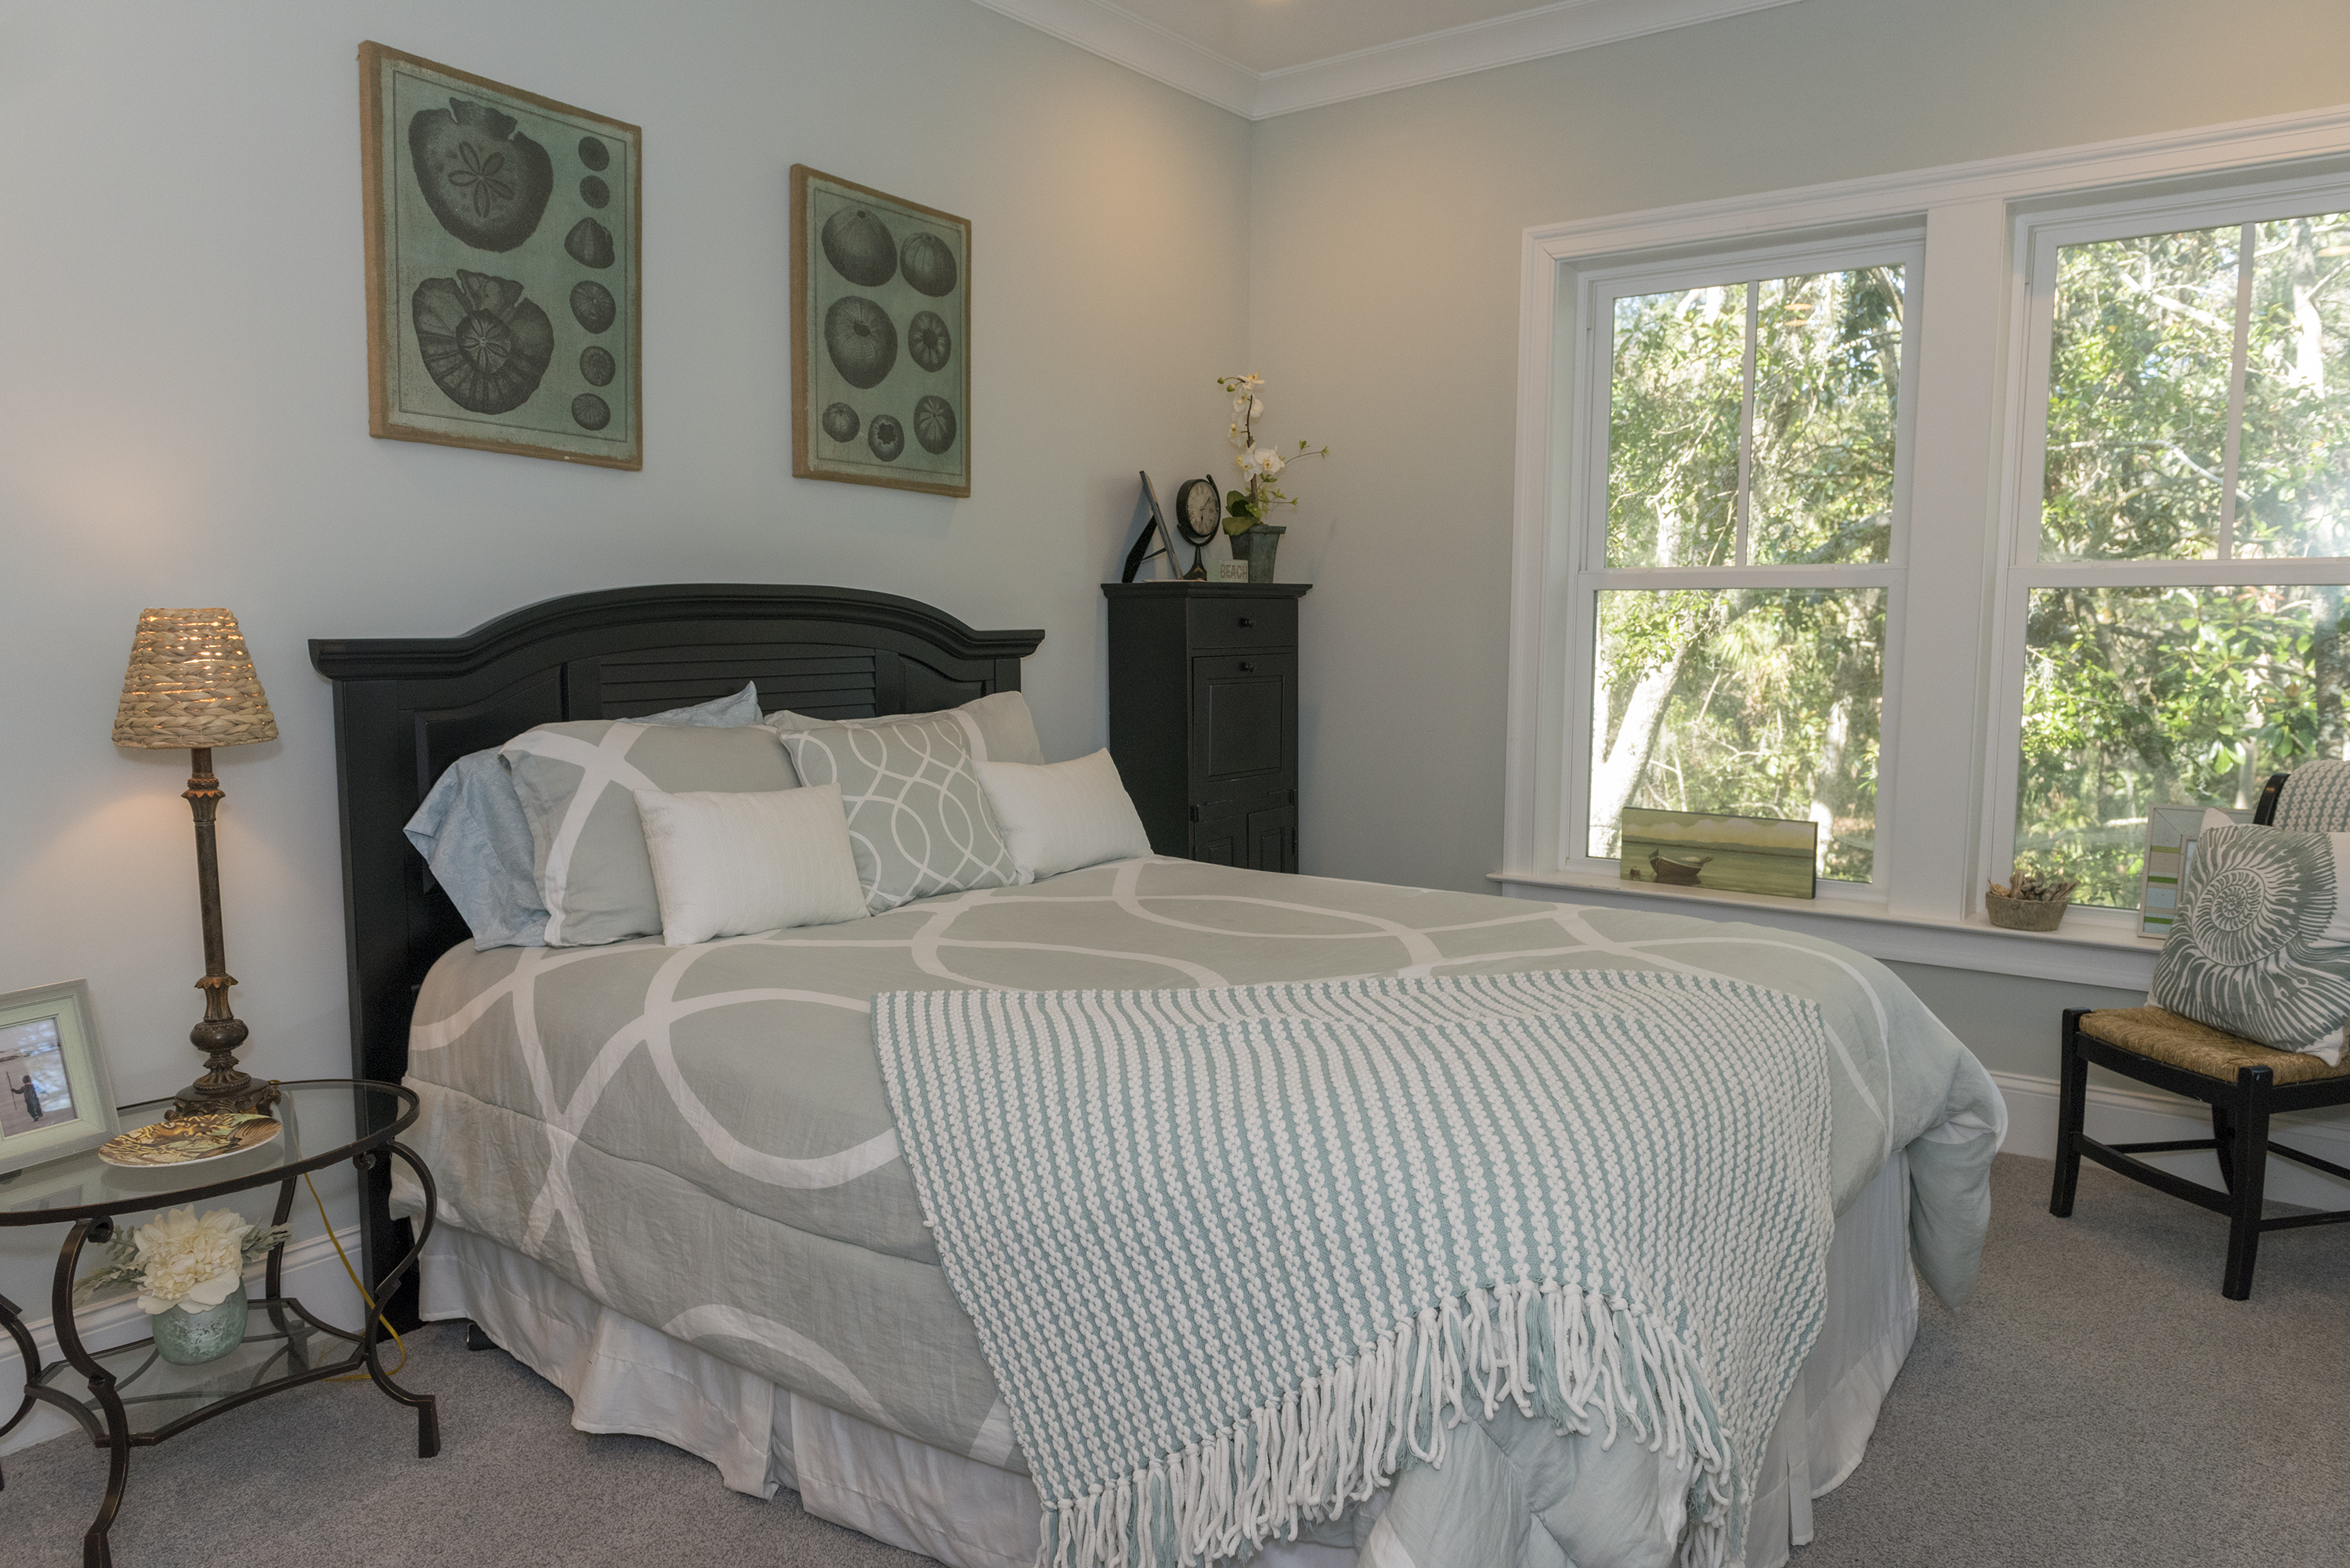 Soft grays provide a peaceful backdrop in the 4th bedroom.